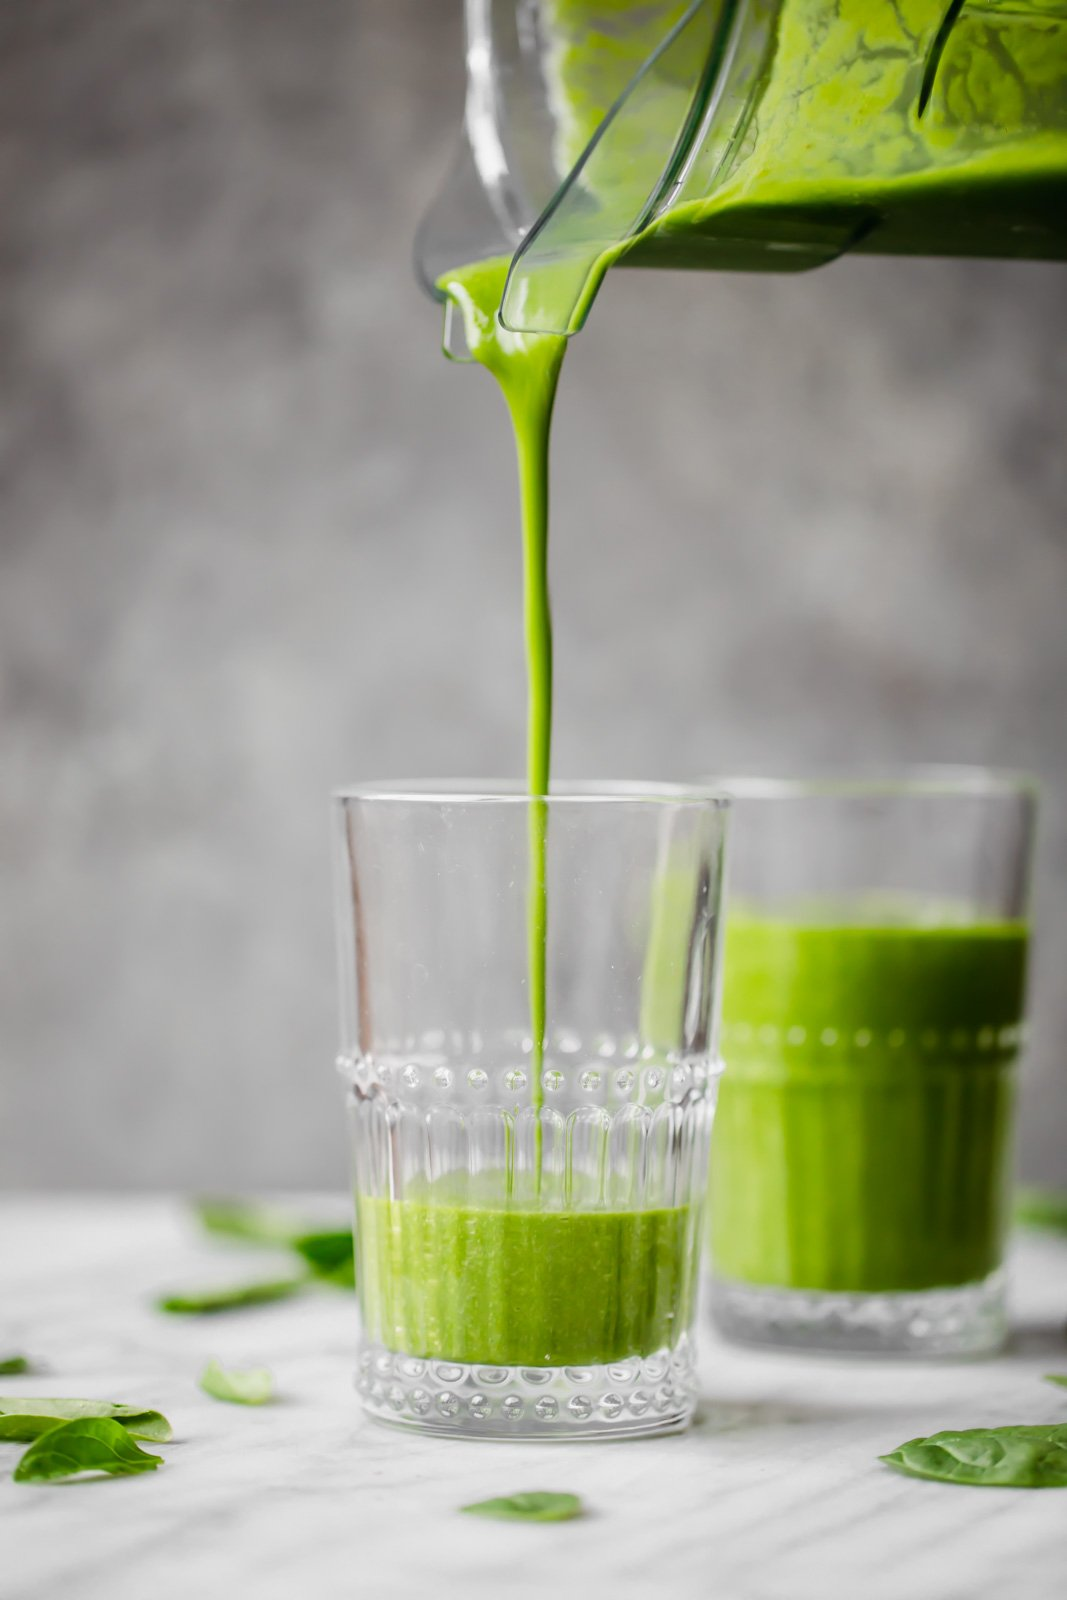 pouring a green wellness smoothie into a glass